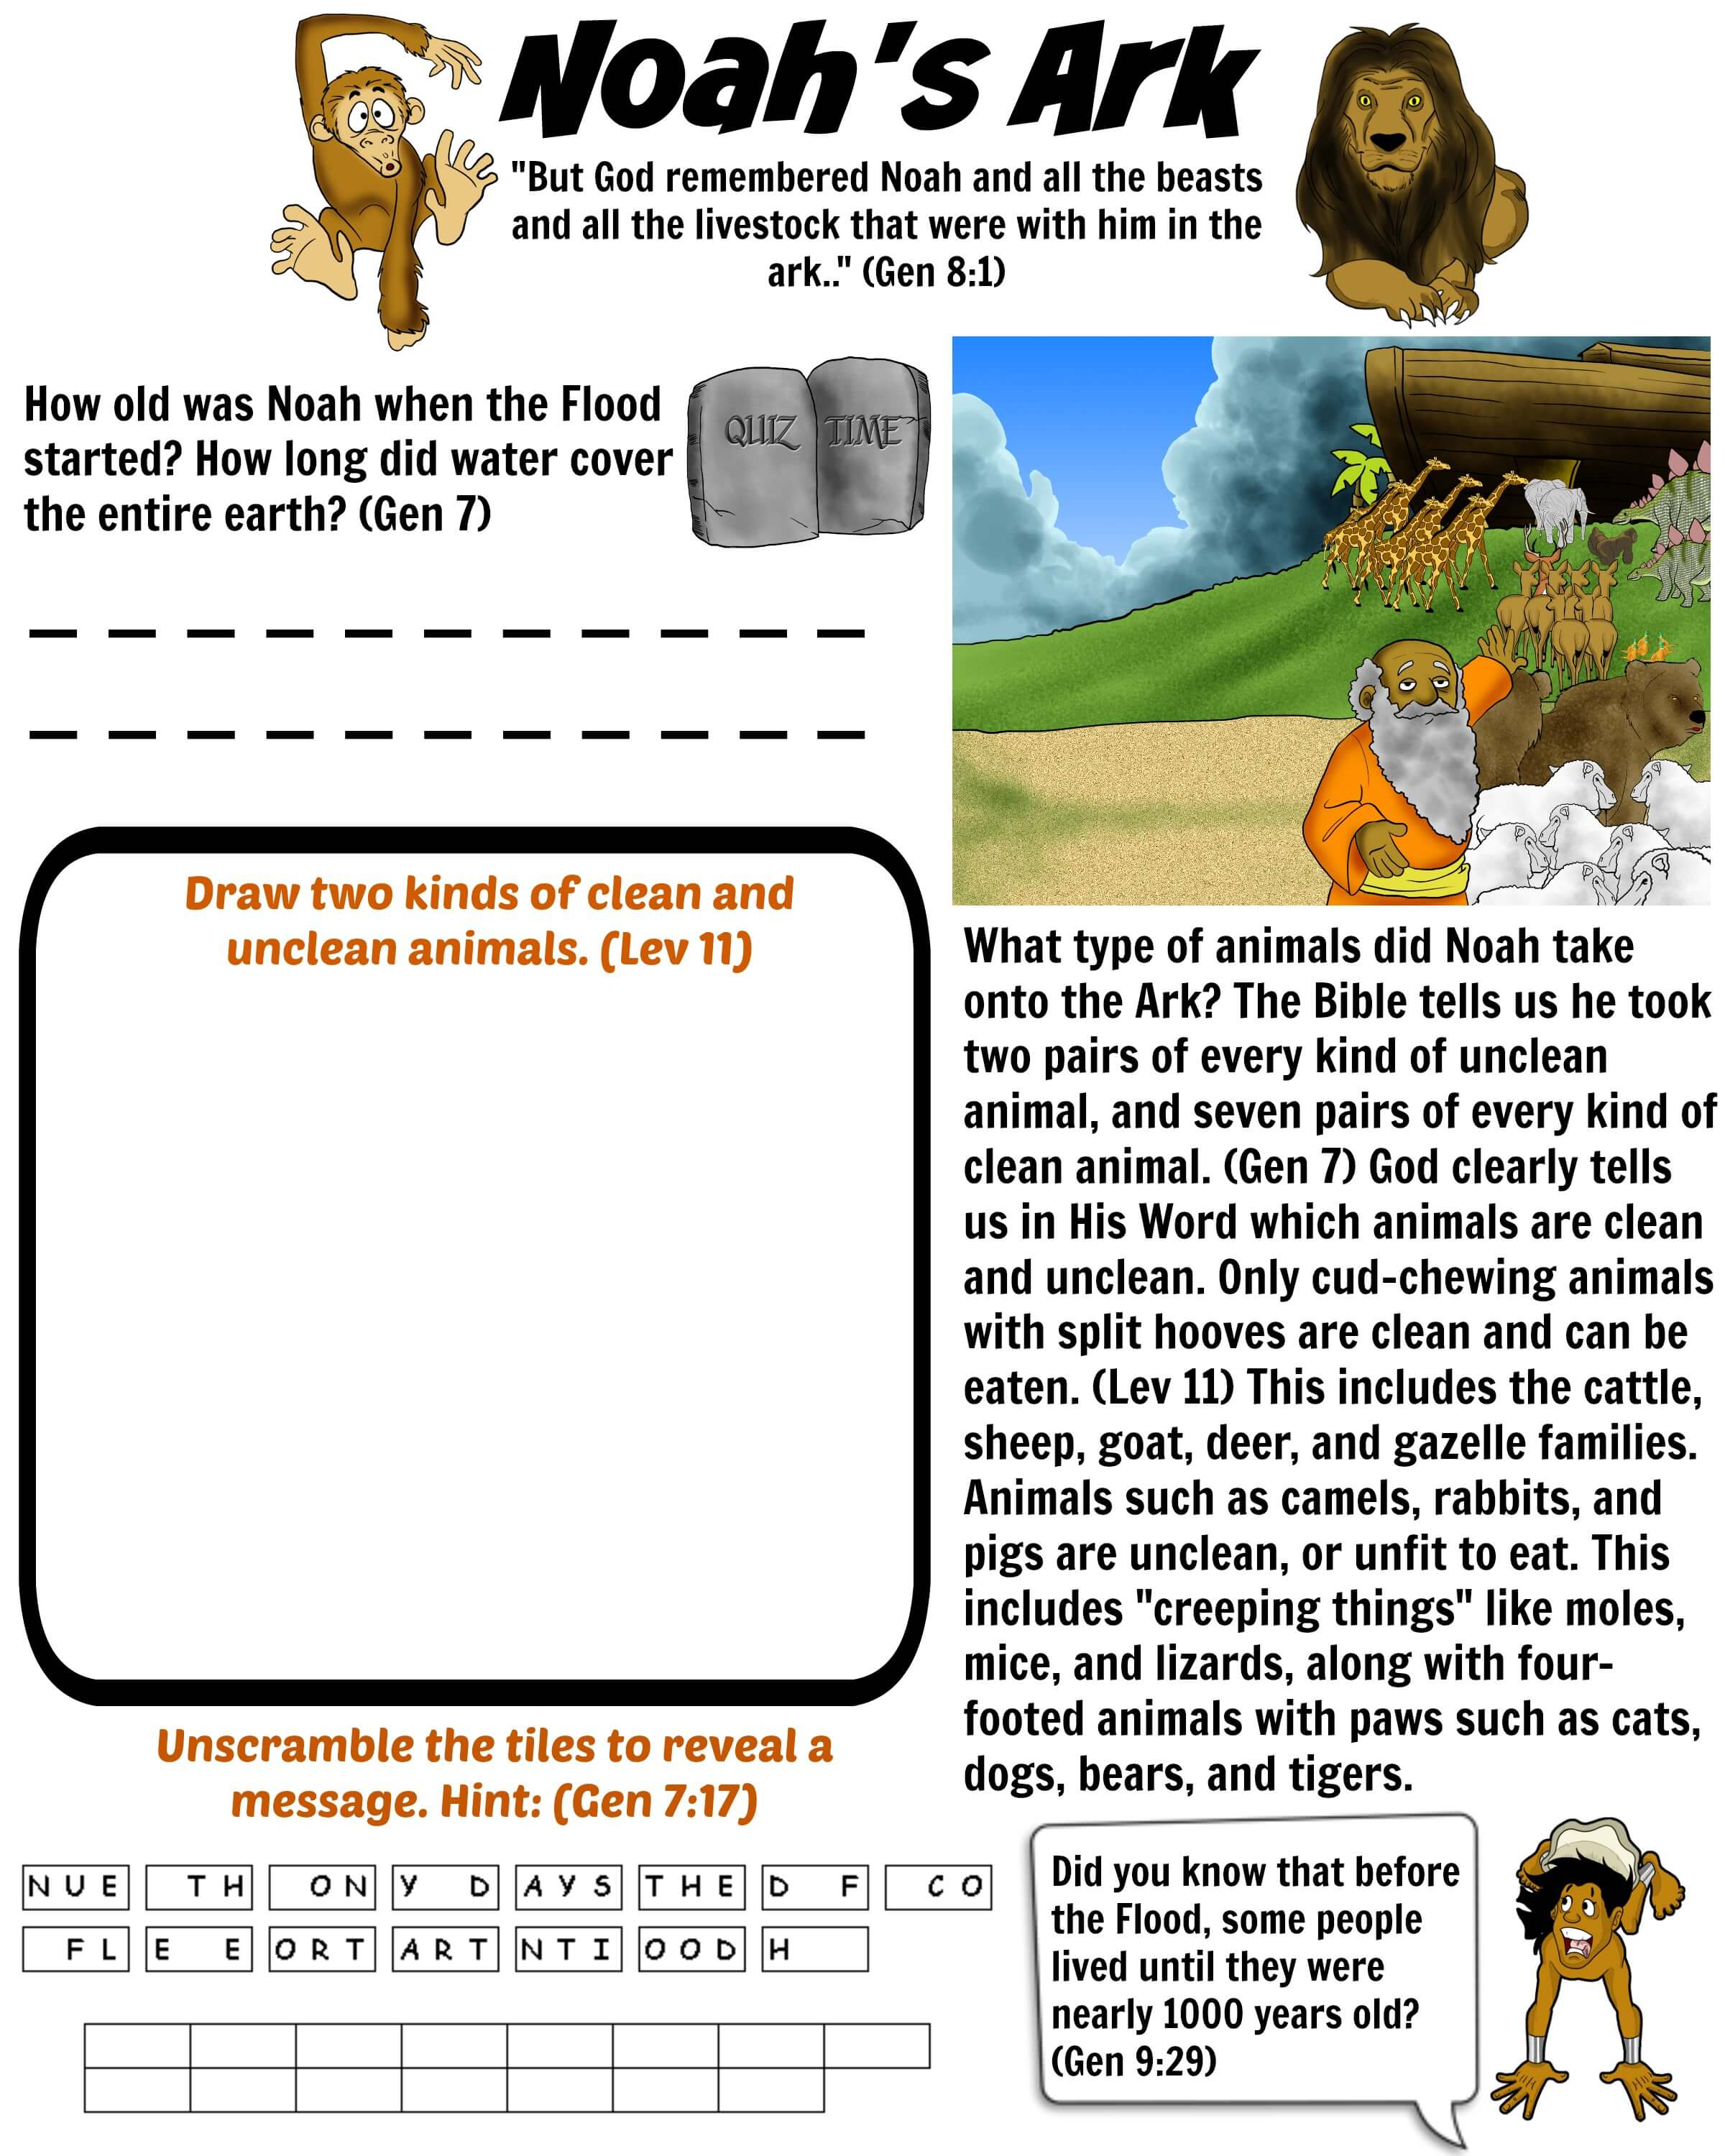 Noah 39 s Ark Bible worksheet for kids Free Download